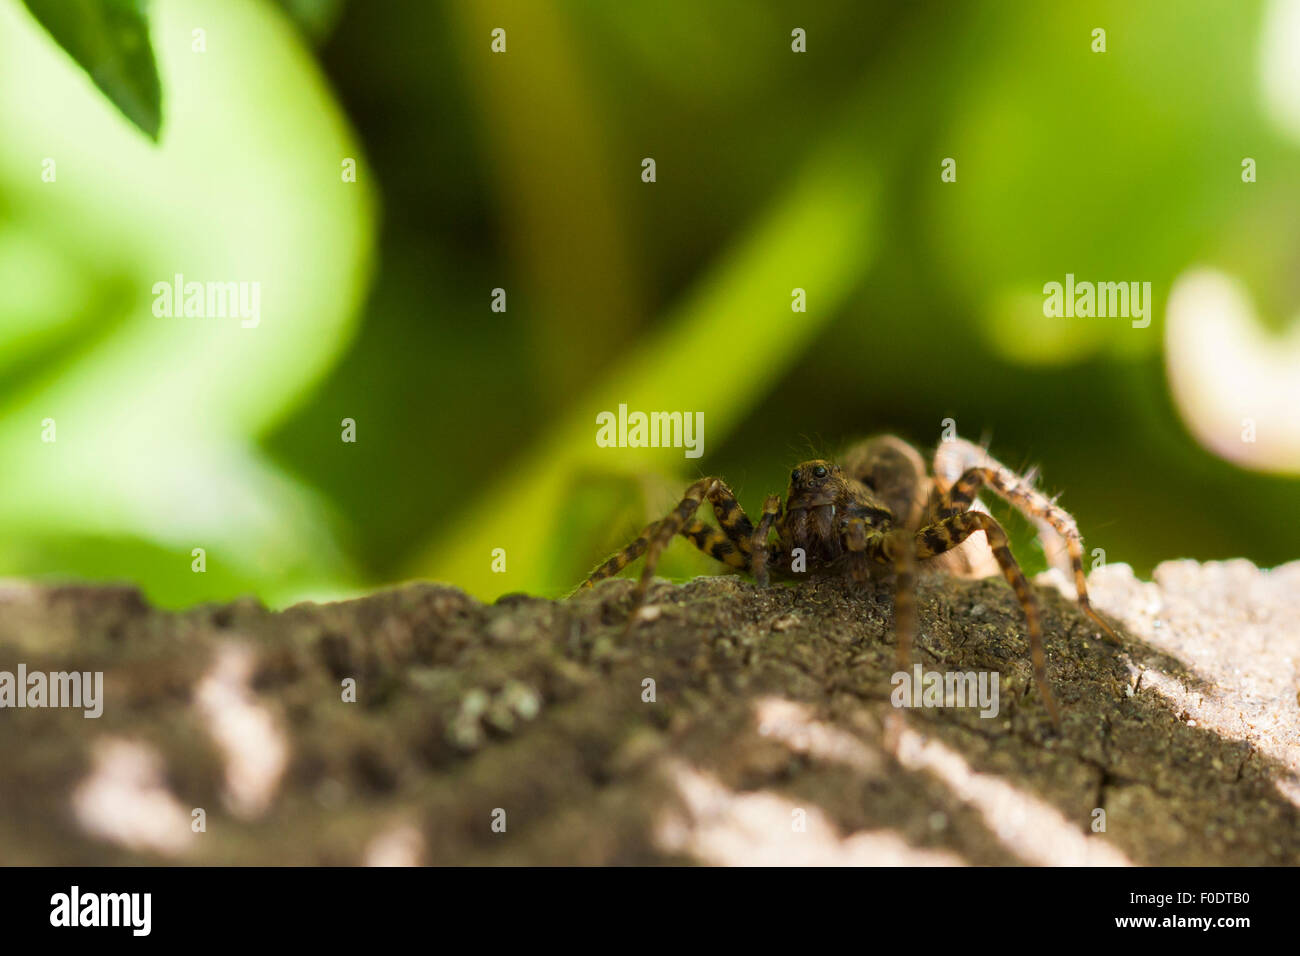 A Spotted Wolf spider hiding in the shade on some wood. - Stock Image